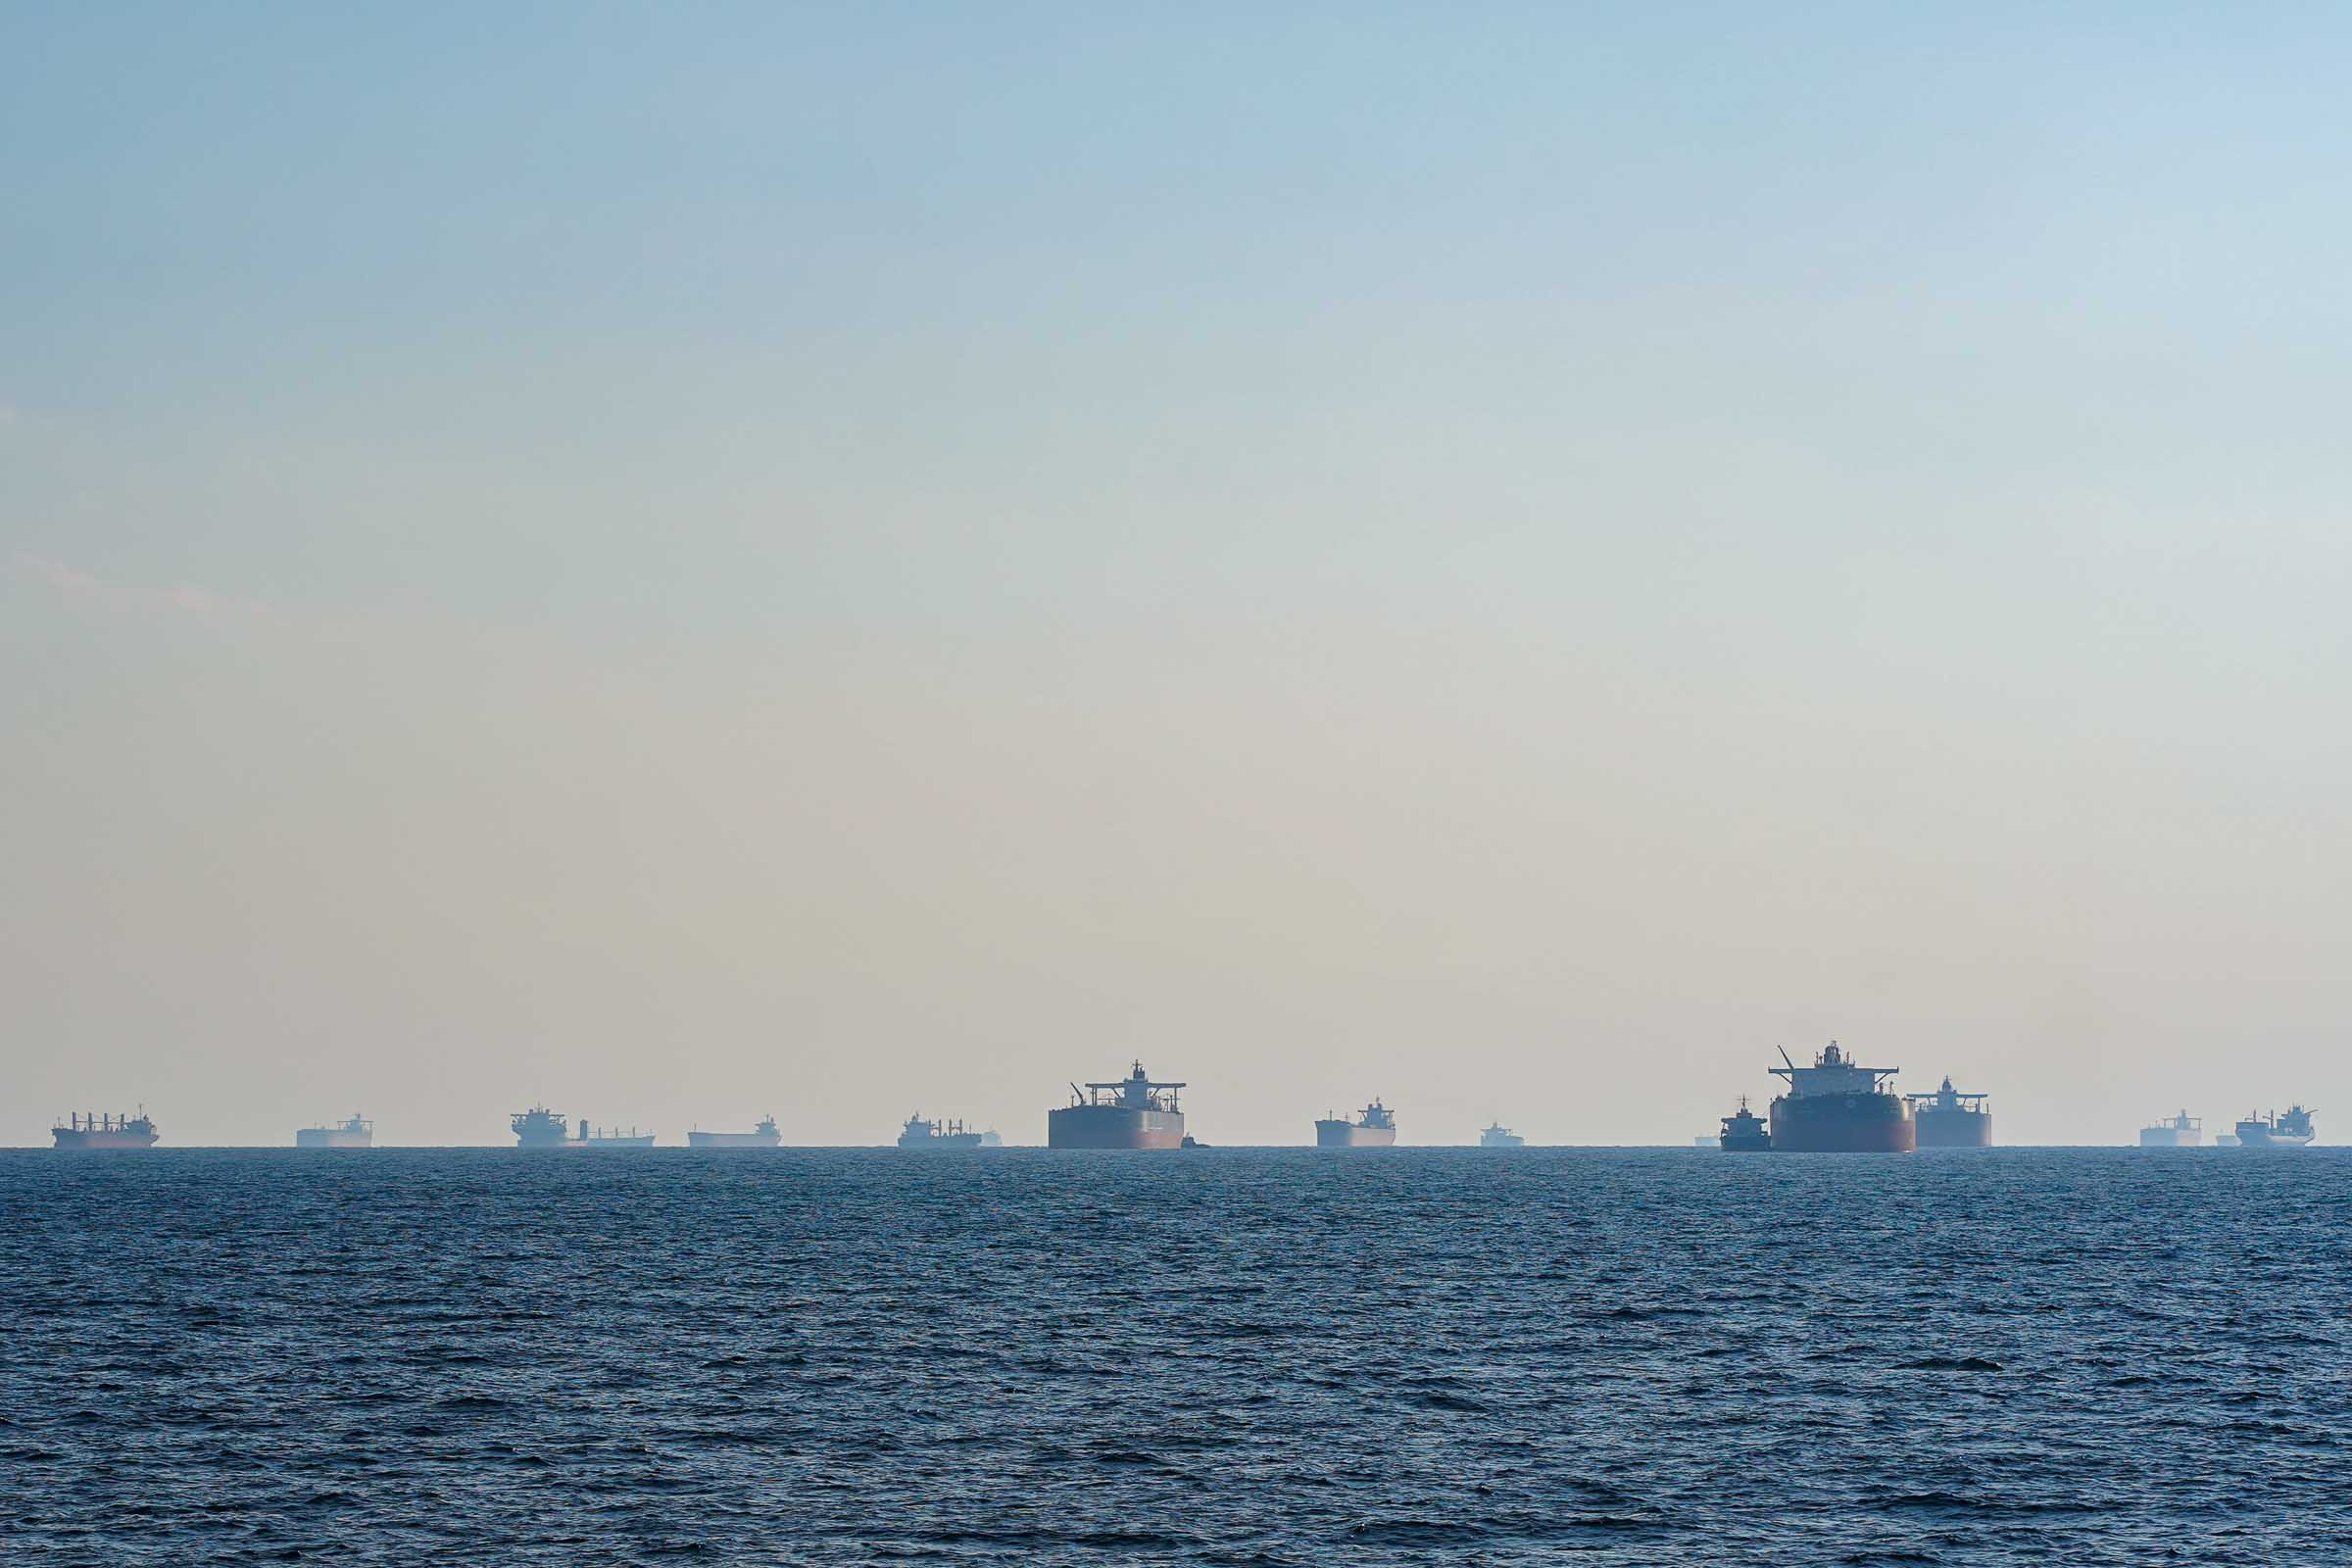 Oil tankers waiting in the Strait of Hormuz